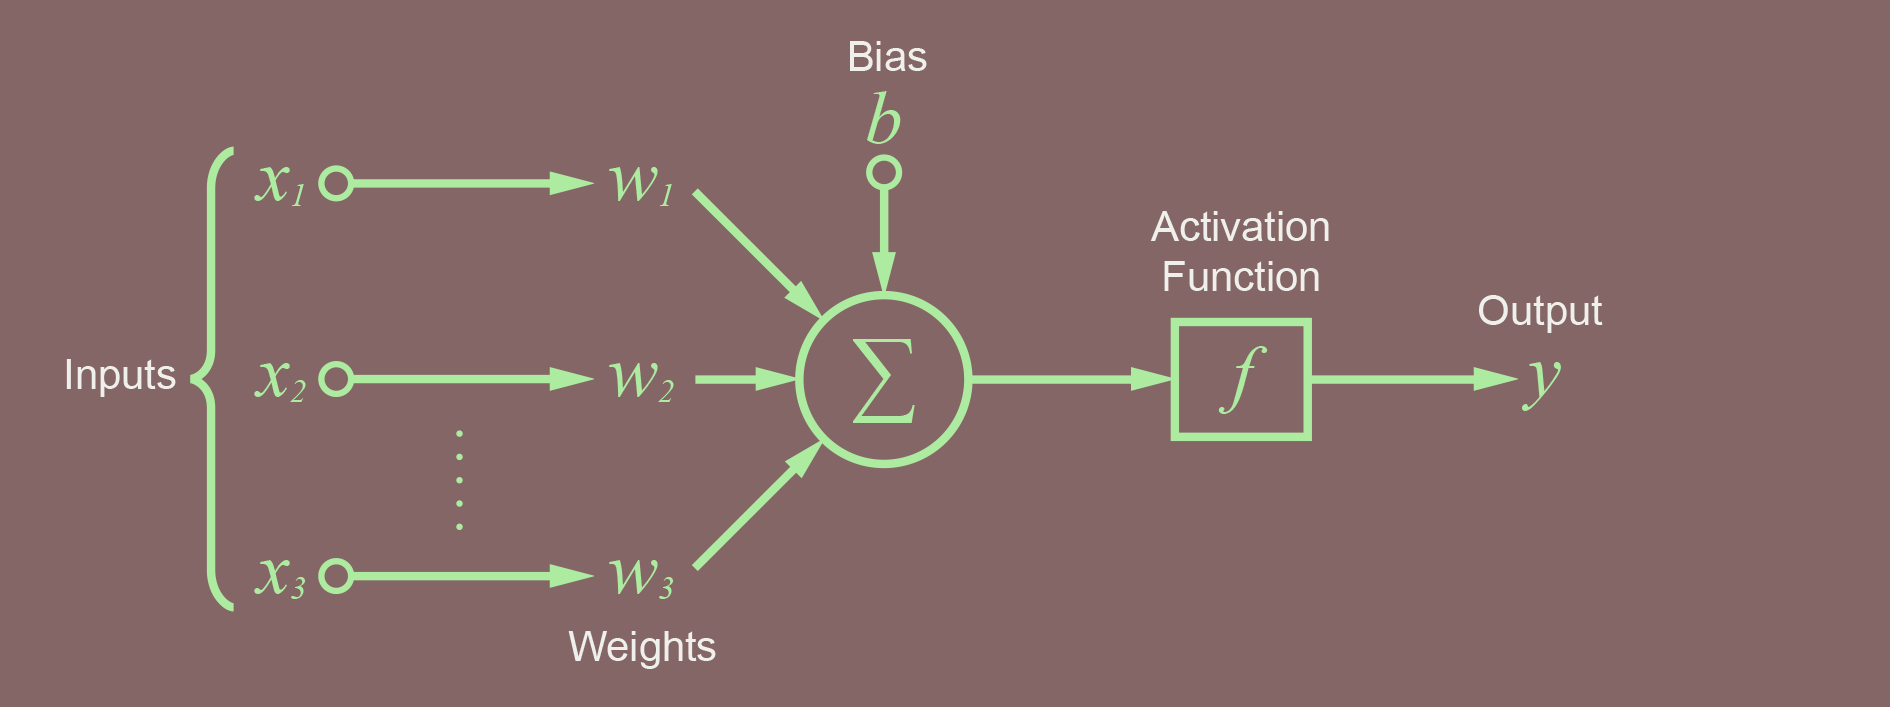 Node with activation function